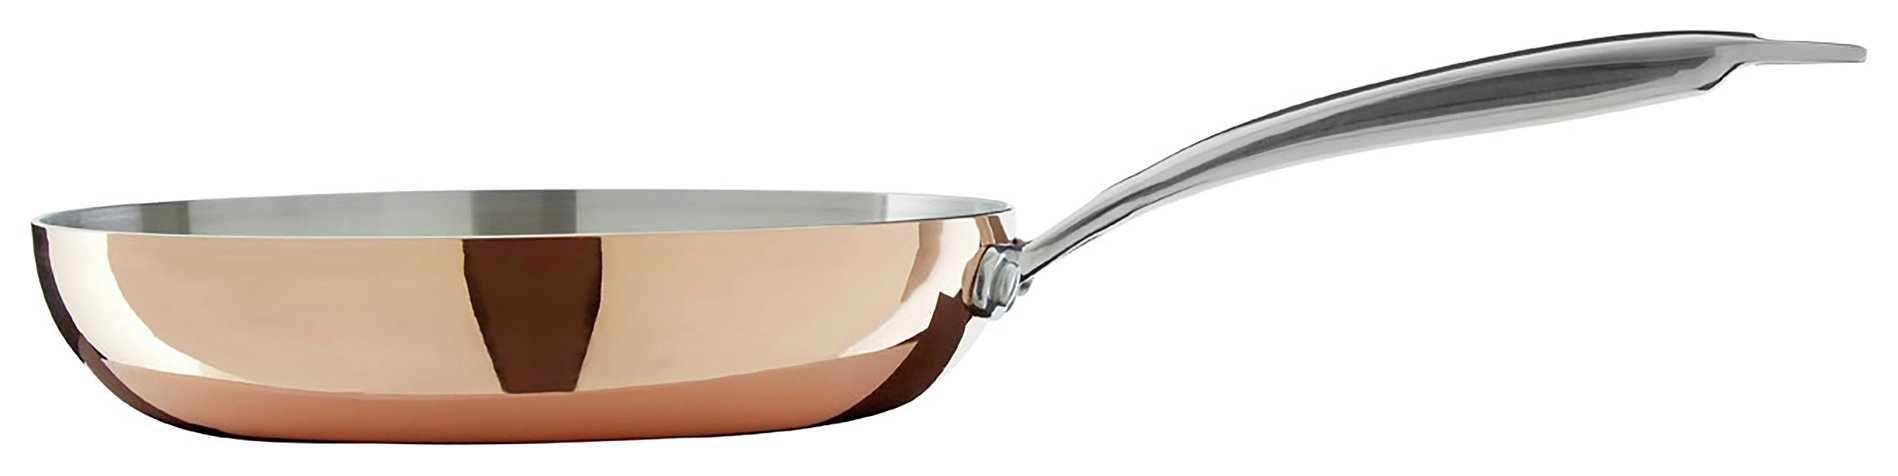 Image of Minerva Copper Finish 24cm Frying Pan.